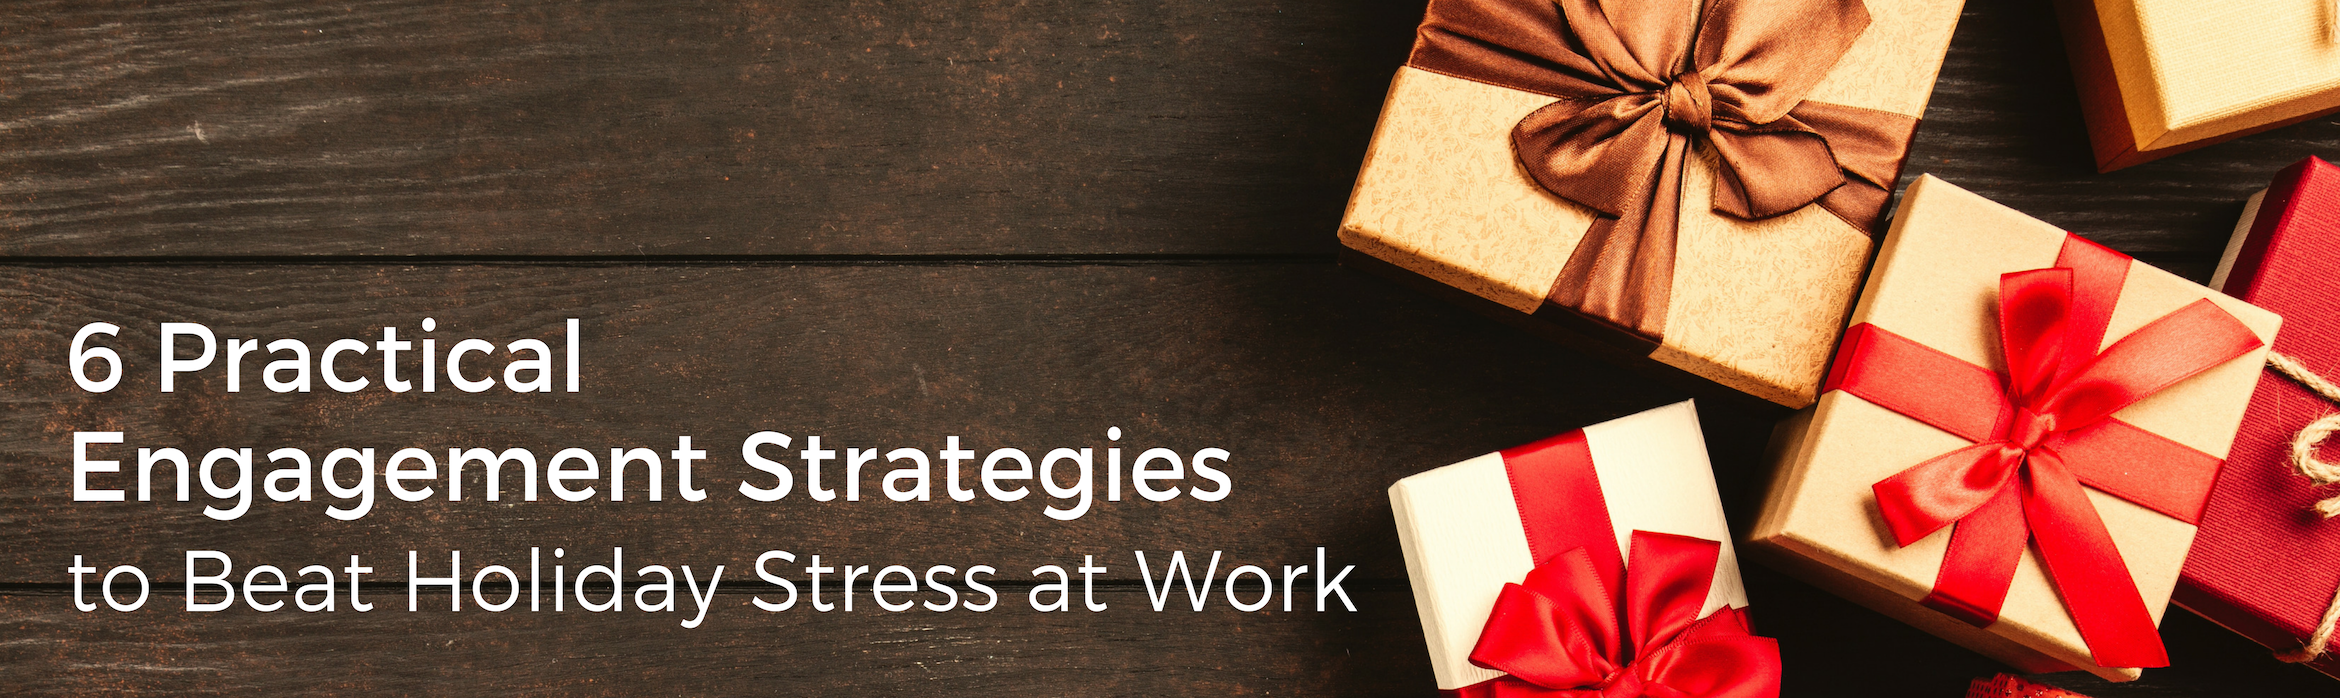 6 Practical Engagement Strategies to Beat Holiday Stress at Work